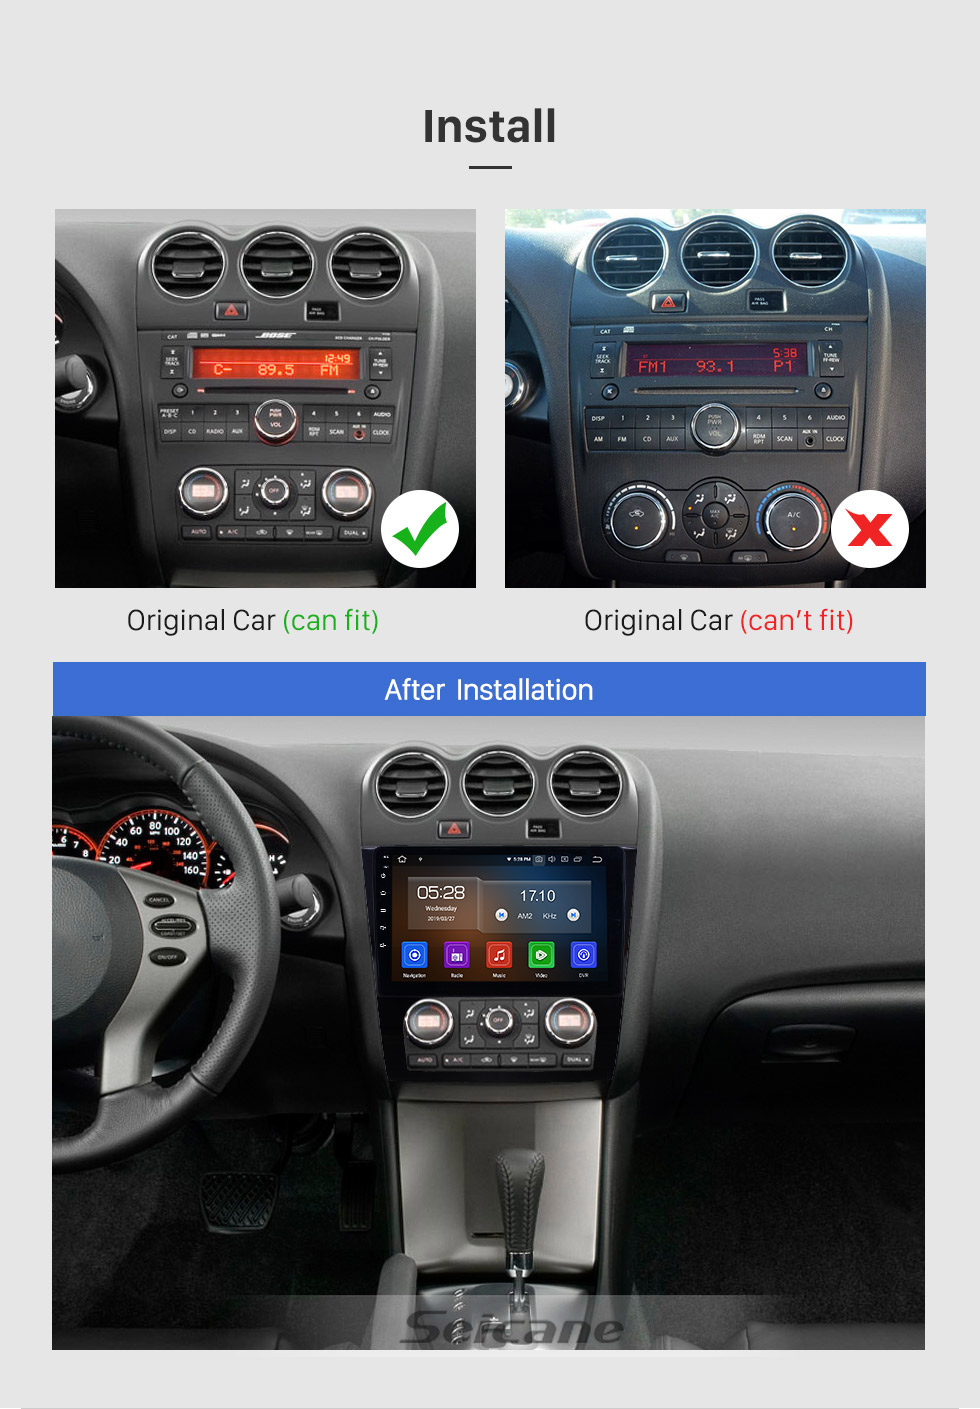 Seicane 2008-2012 Nissan Teana ALTIMA Auto A / C 9 Zoll Android 9.0 GPS-Navigationsradio mit Bluetooth Carplay USB WIFI HD Touchscreen-Stereo-Unterstützung DVR DVD